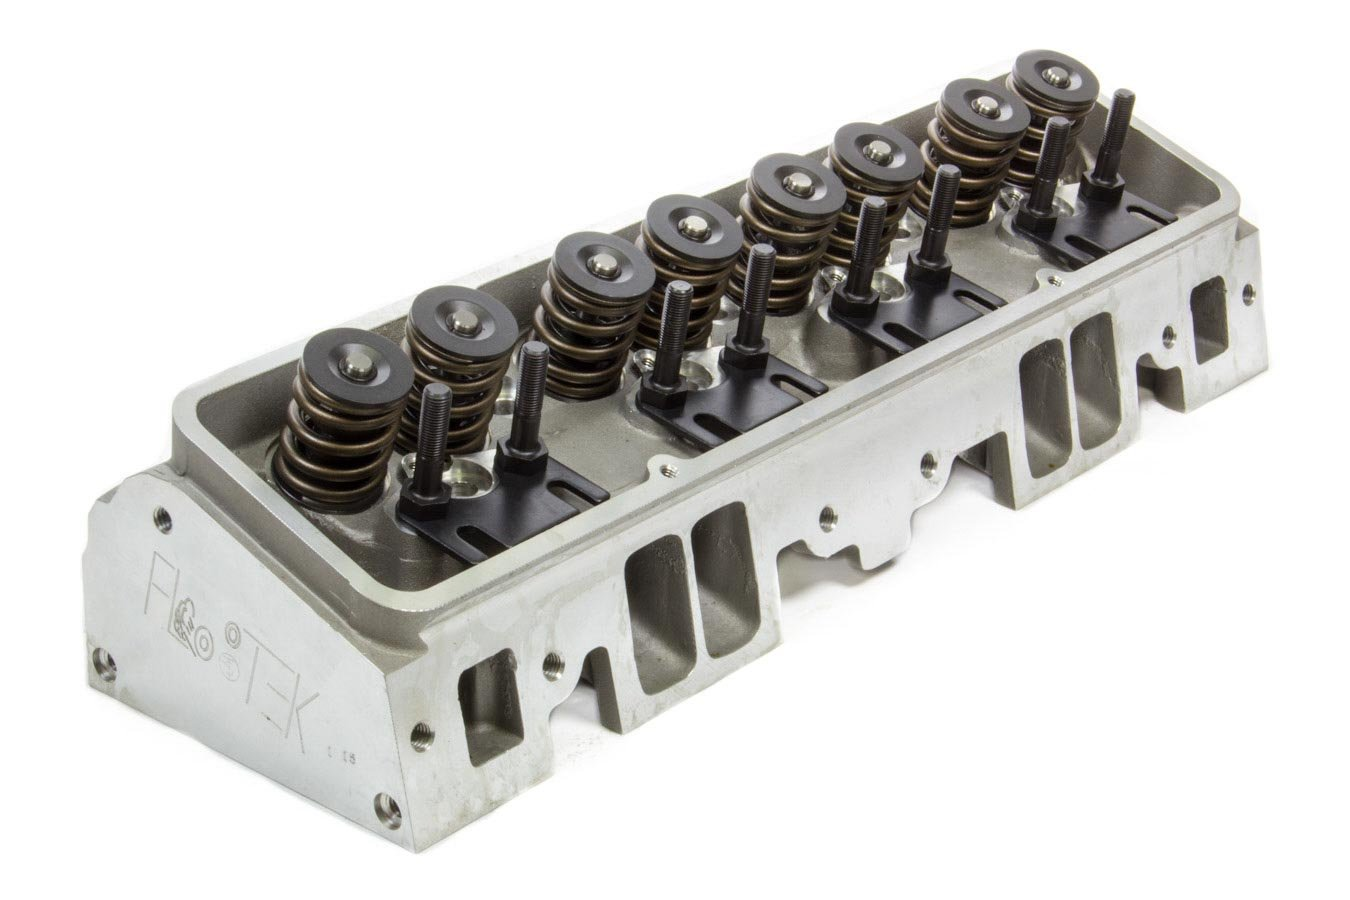 1. Flotek 102505 Aluminum Cylinder Head for Small Block Chevy